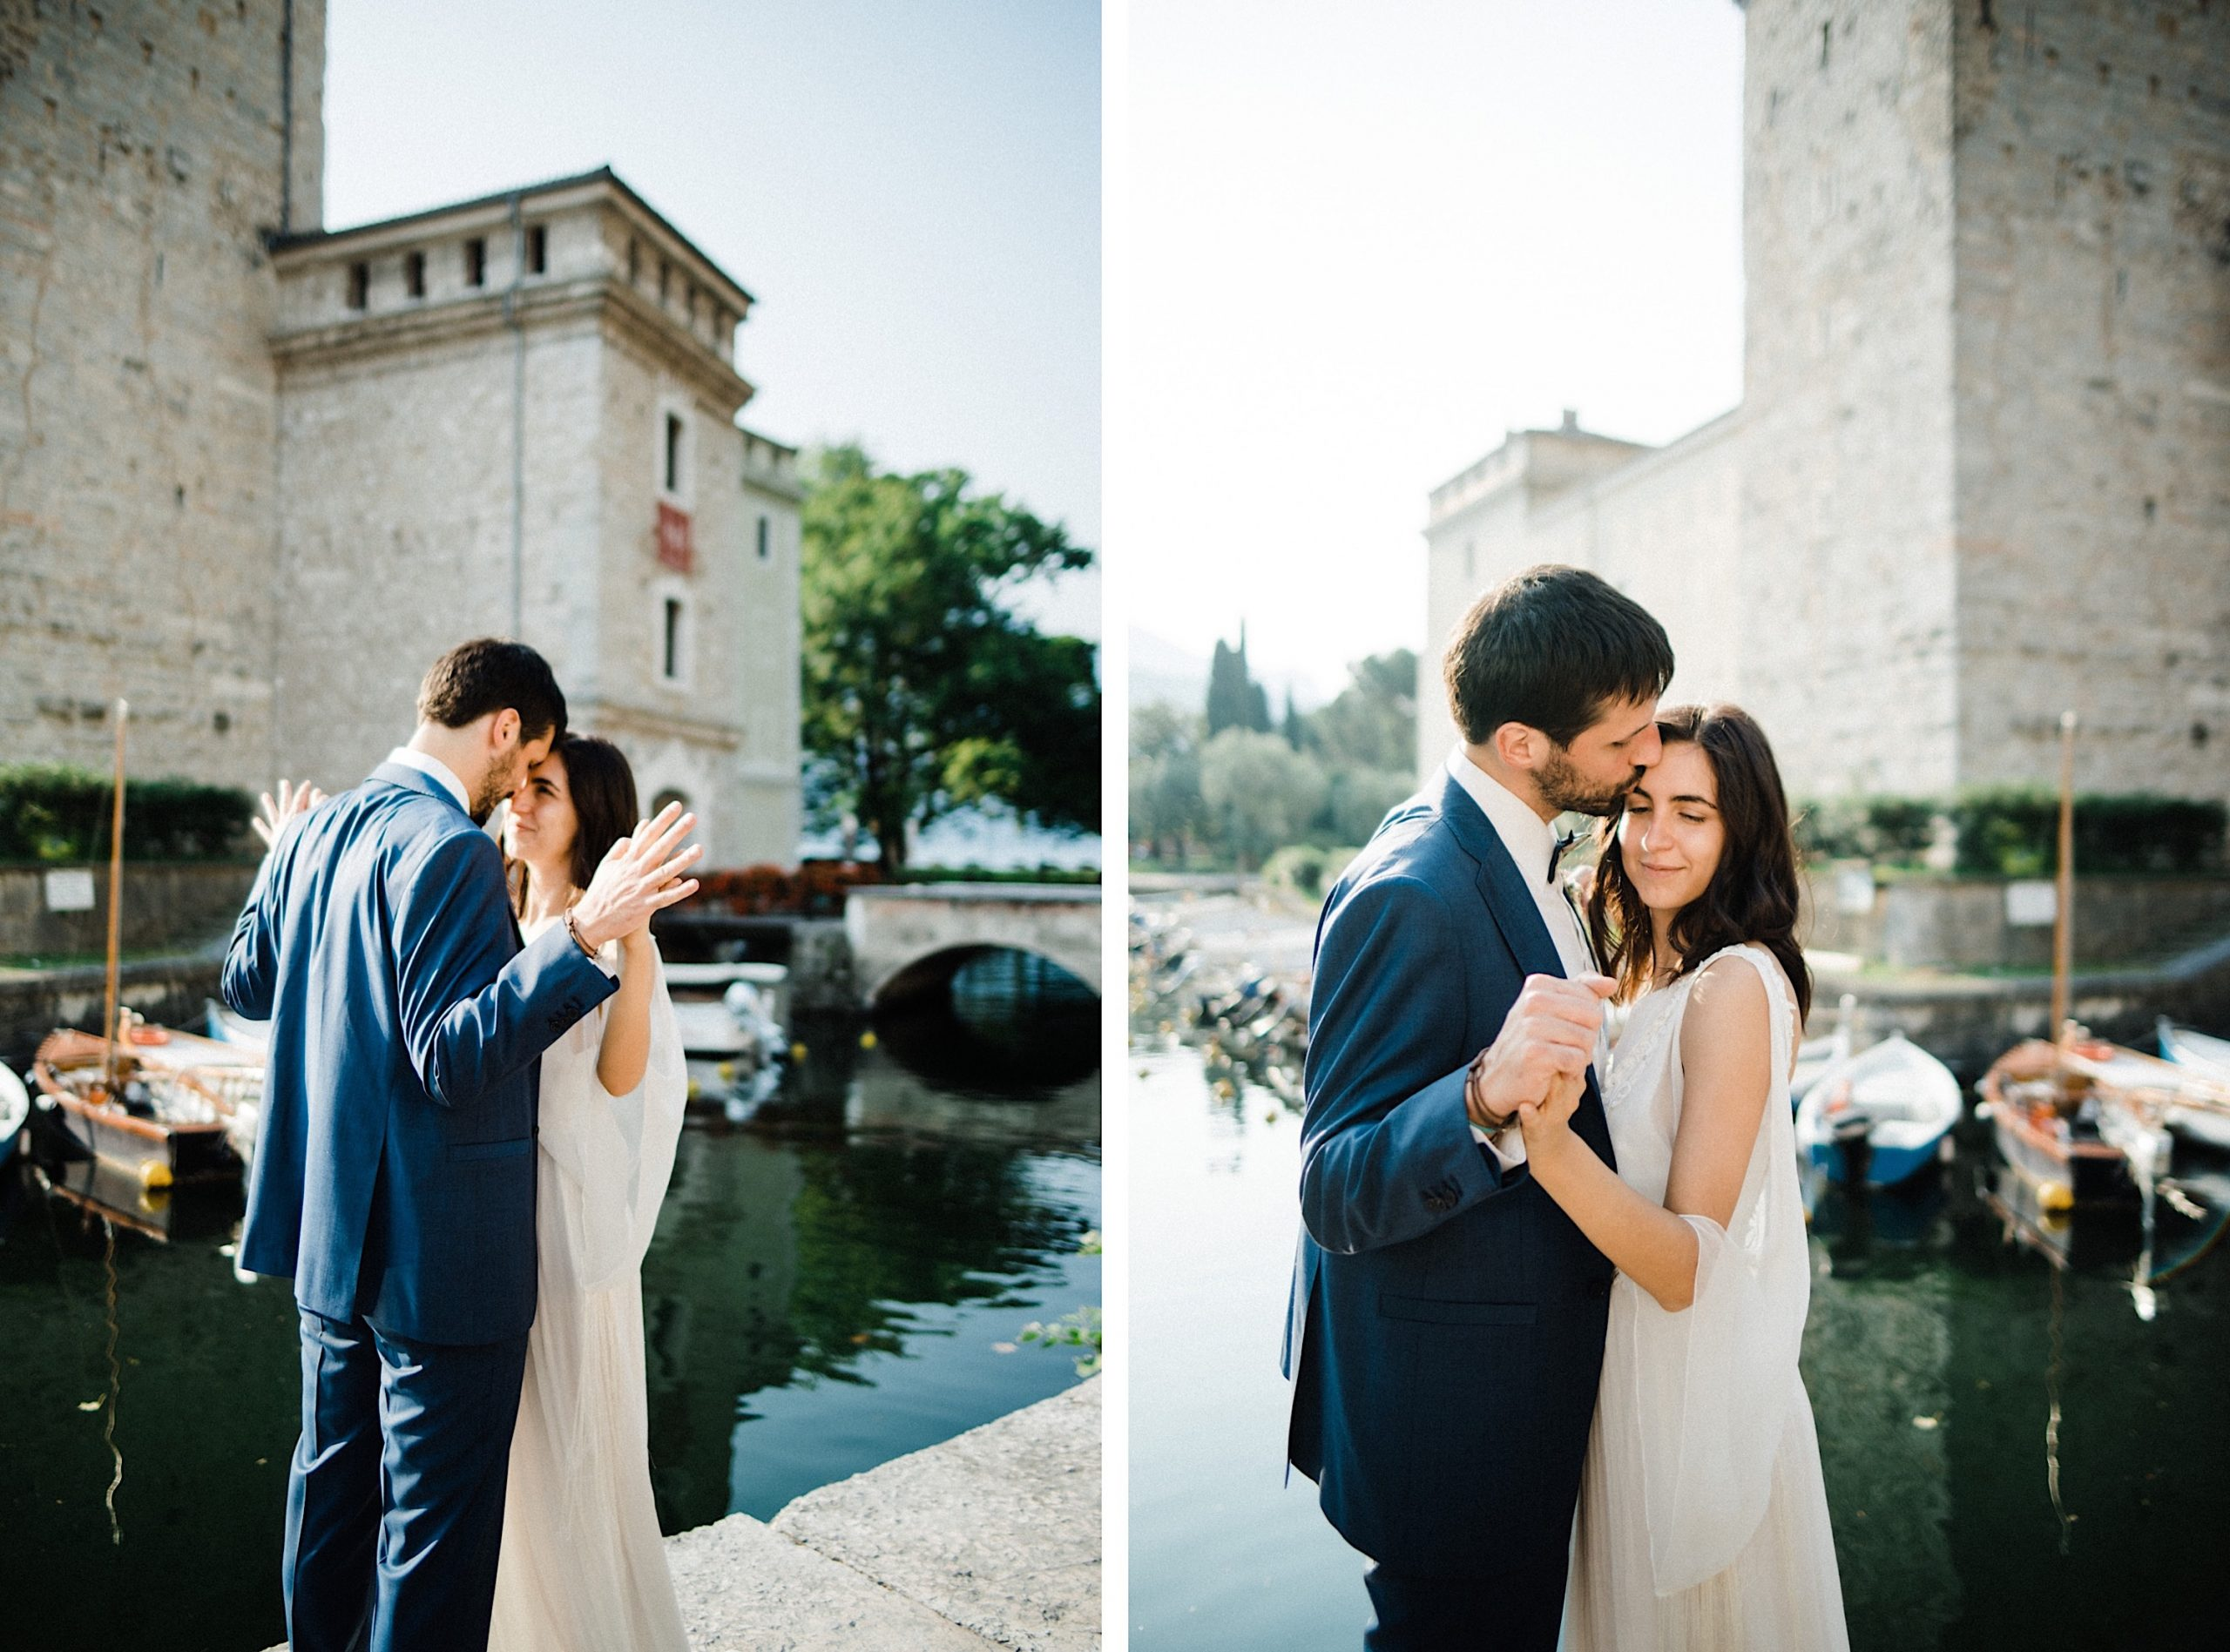 A newly married couple standing together in front of an old Italian castle by the lake, cuddling and kissing.